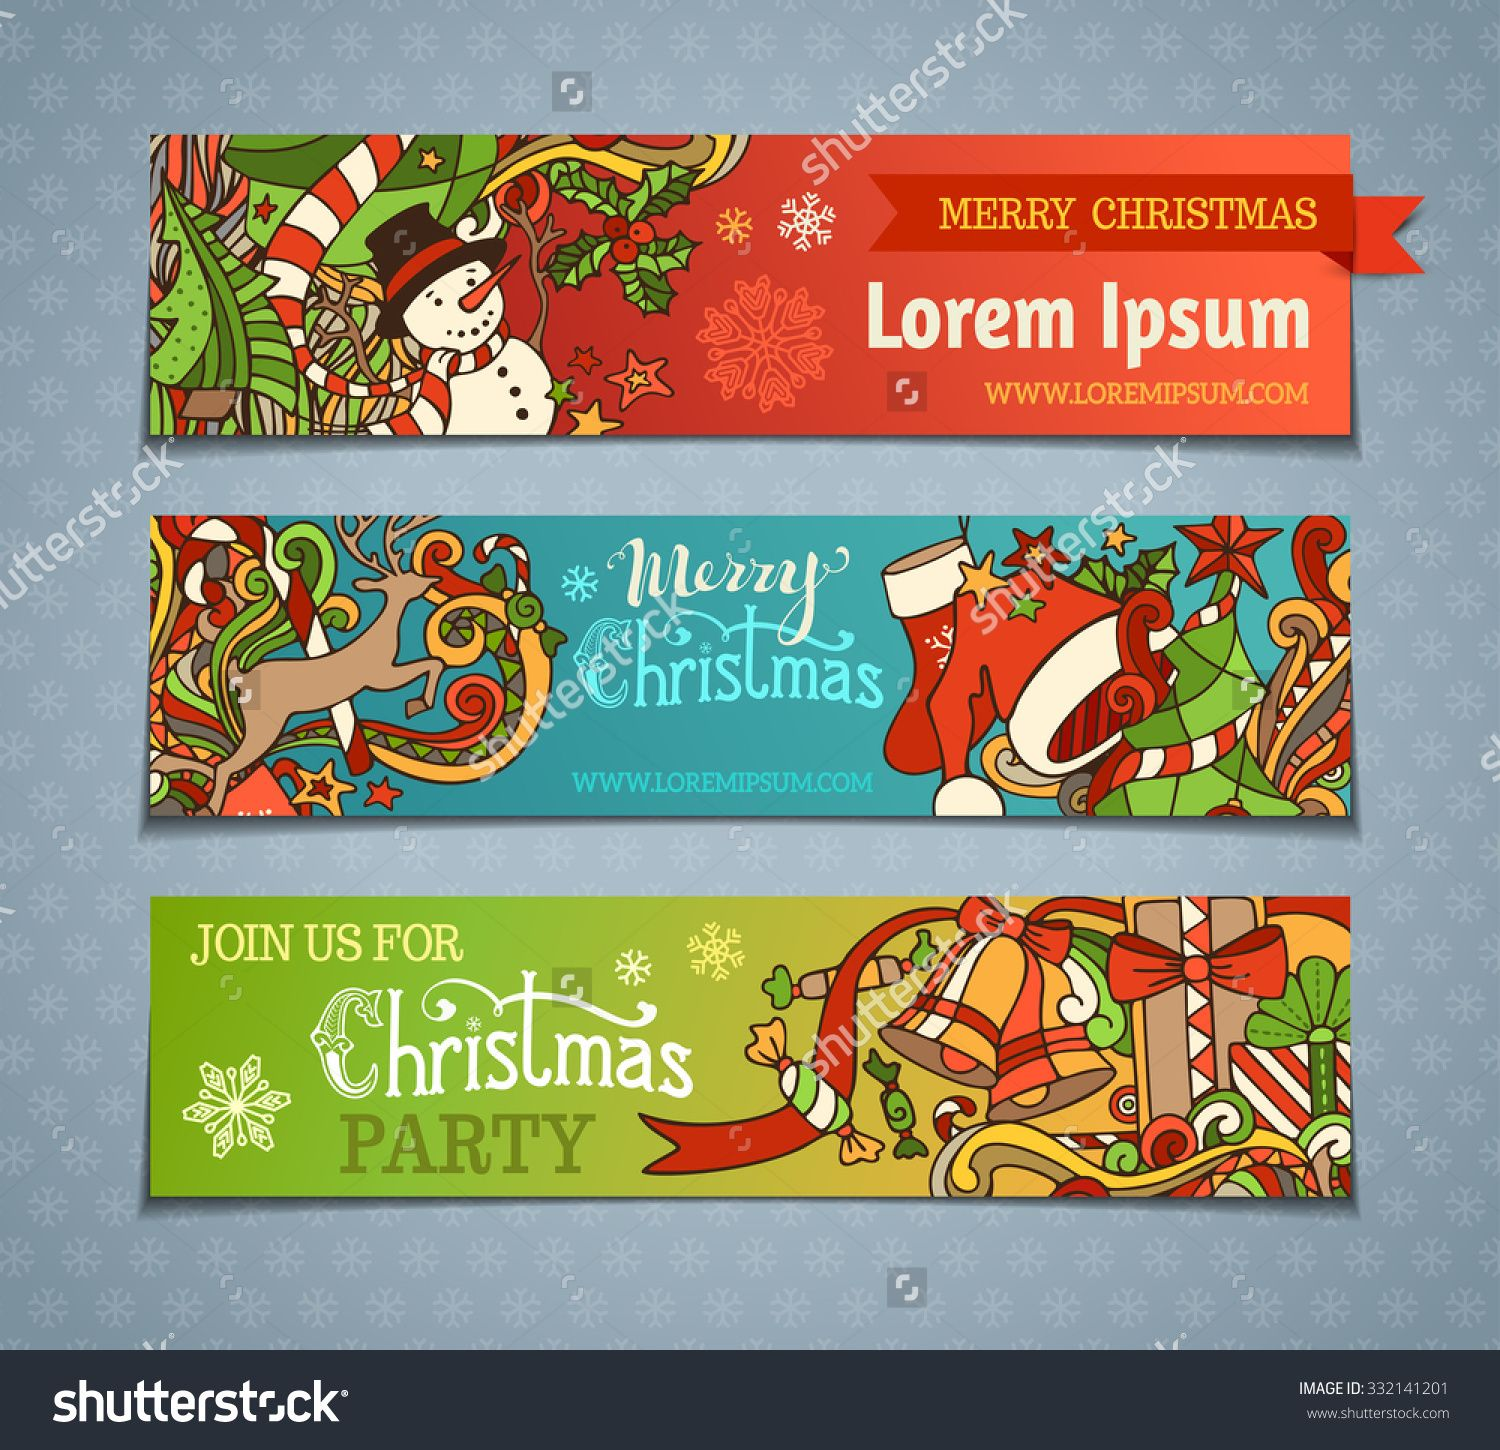 Vector set of cartoon Christmas banners. Colorful Christmas tree and baubles, Santa sock and hat, holly berries, gifts, candy canes, snowman, snowflakes, swirls, deer, sweets, bells and ribbons.